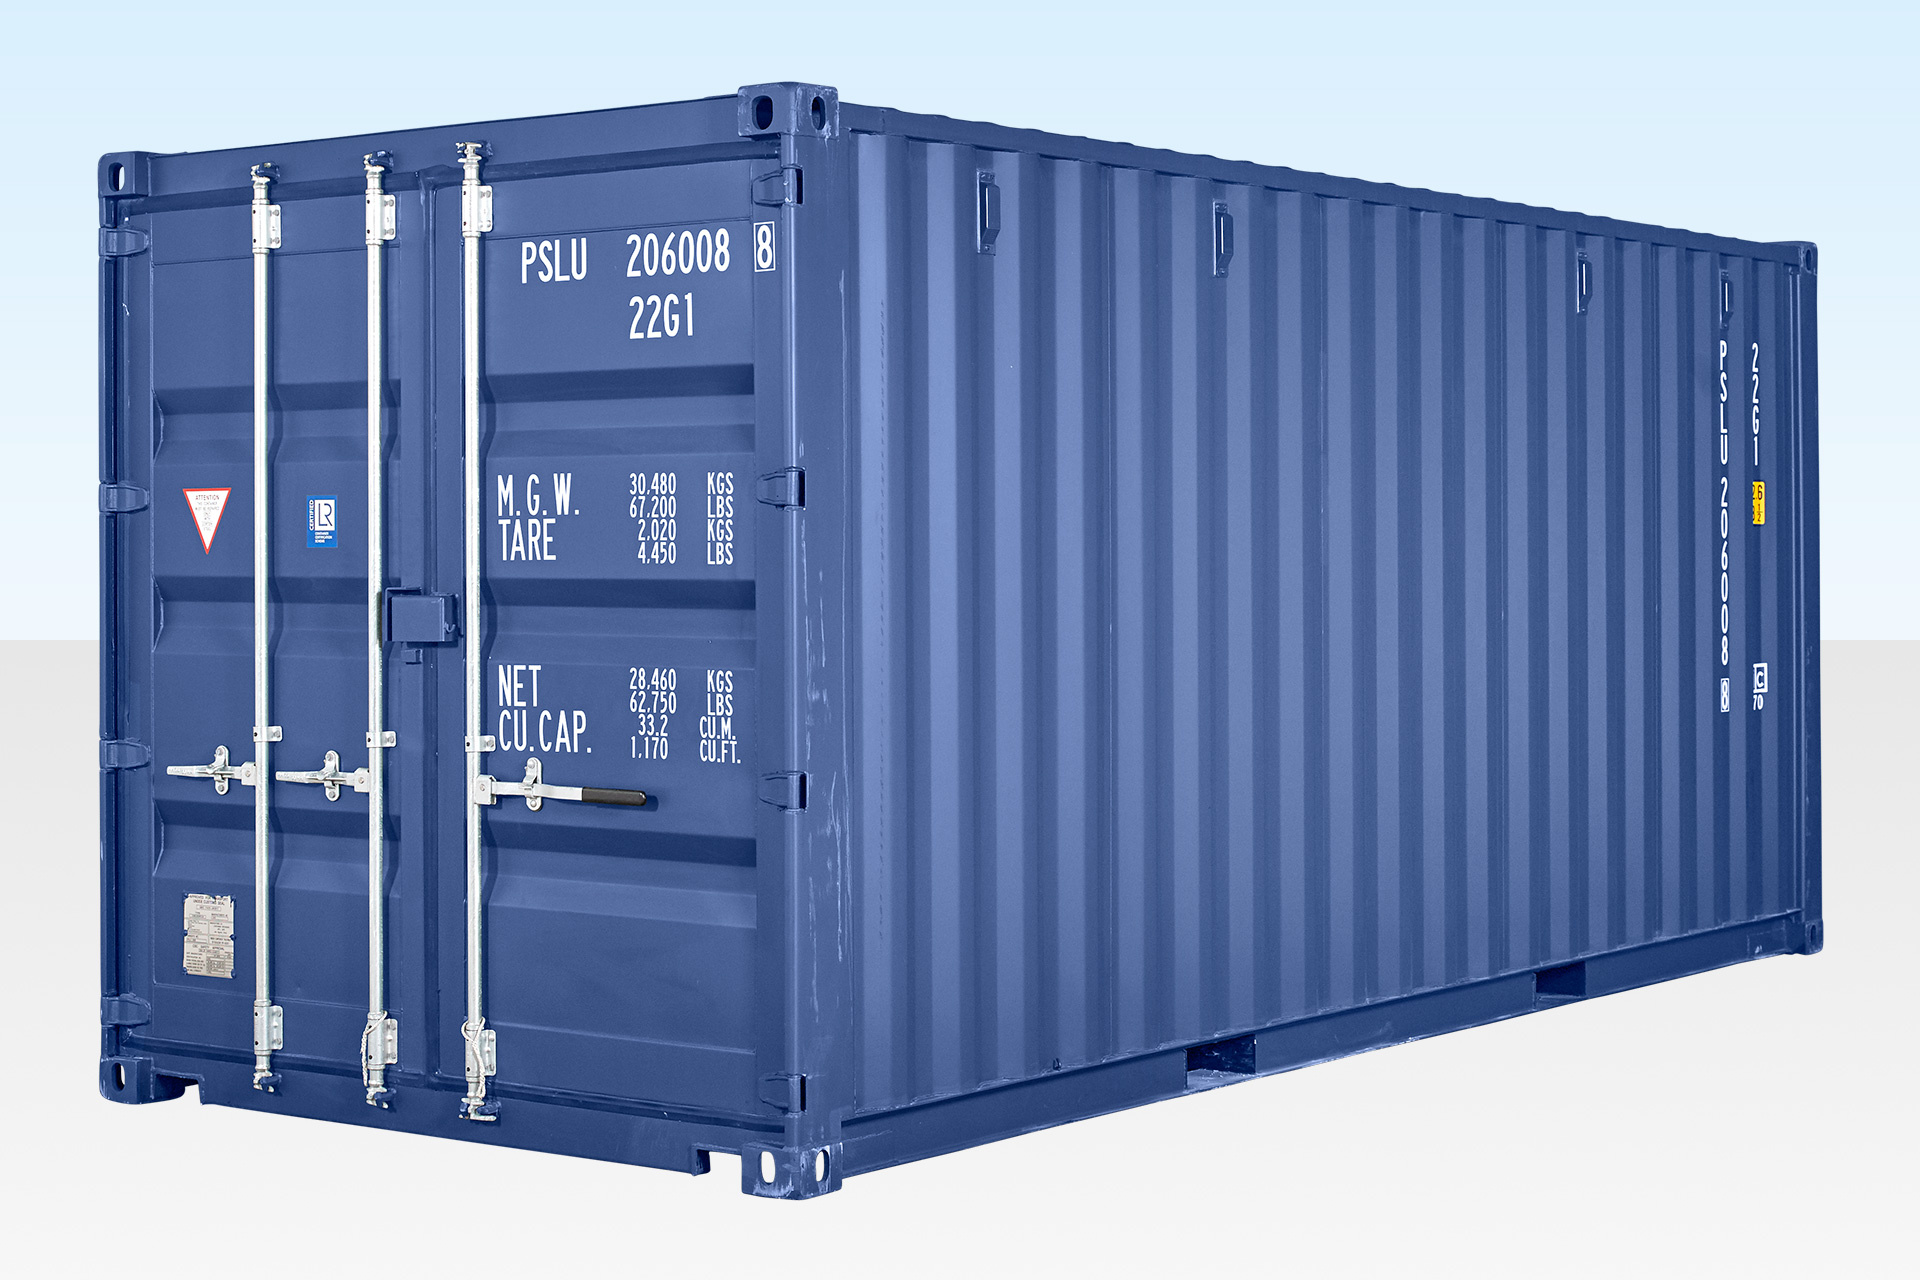 20ft Storage Container For Hire In The Uk Portable Space - Containers For Storage